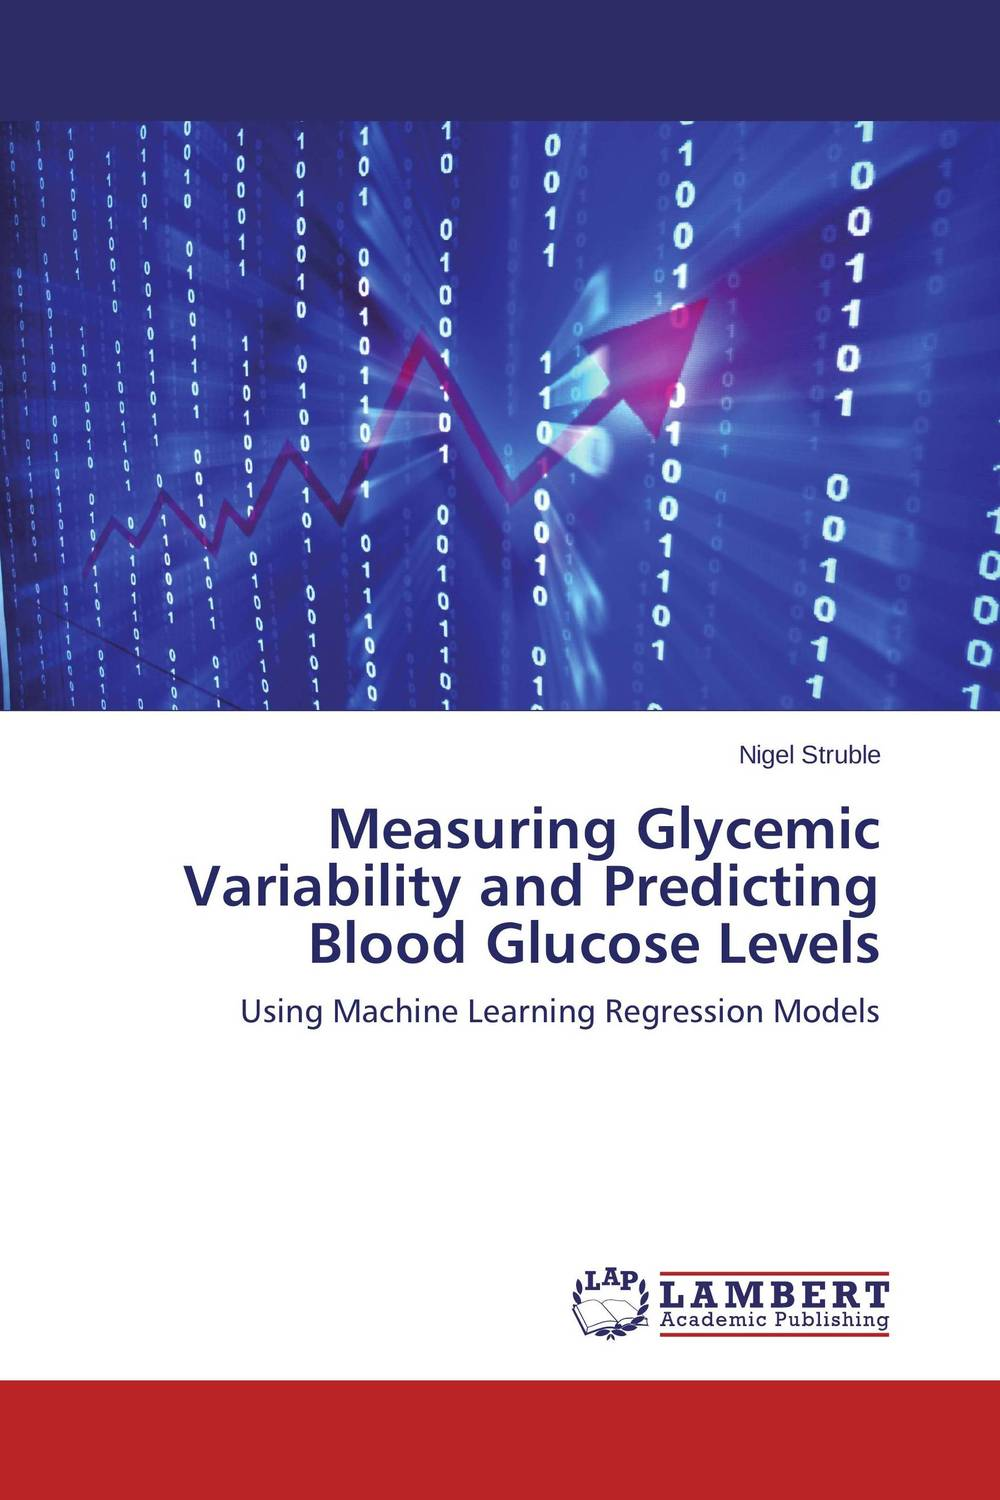 Measuring Glycemic Variability and Predicting Blood Glucose Levels measuring glycemic variability and predicting blood glucose levels